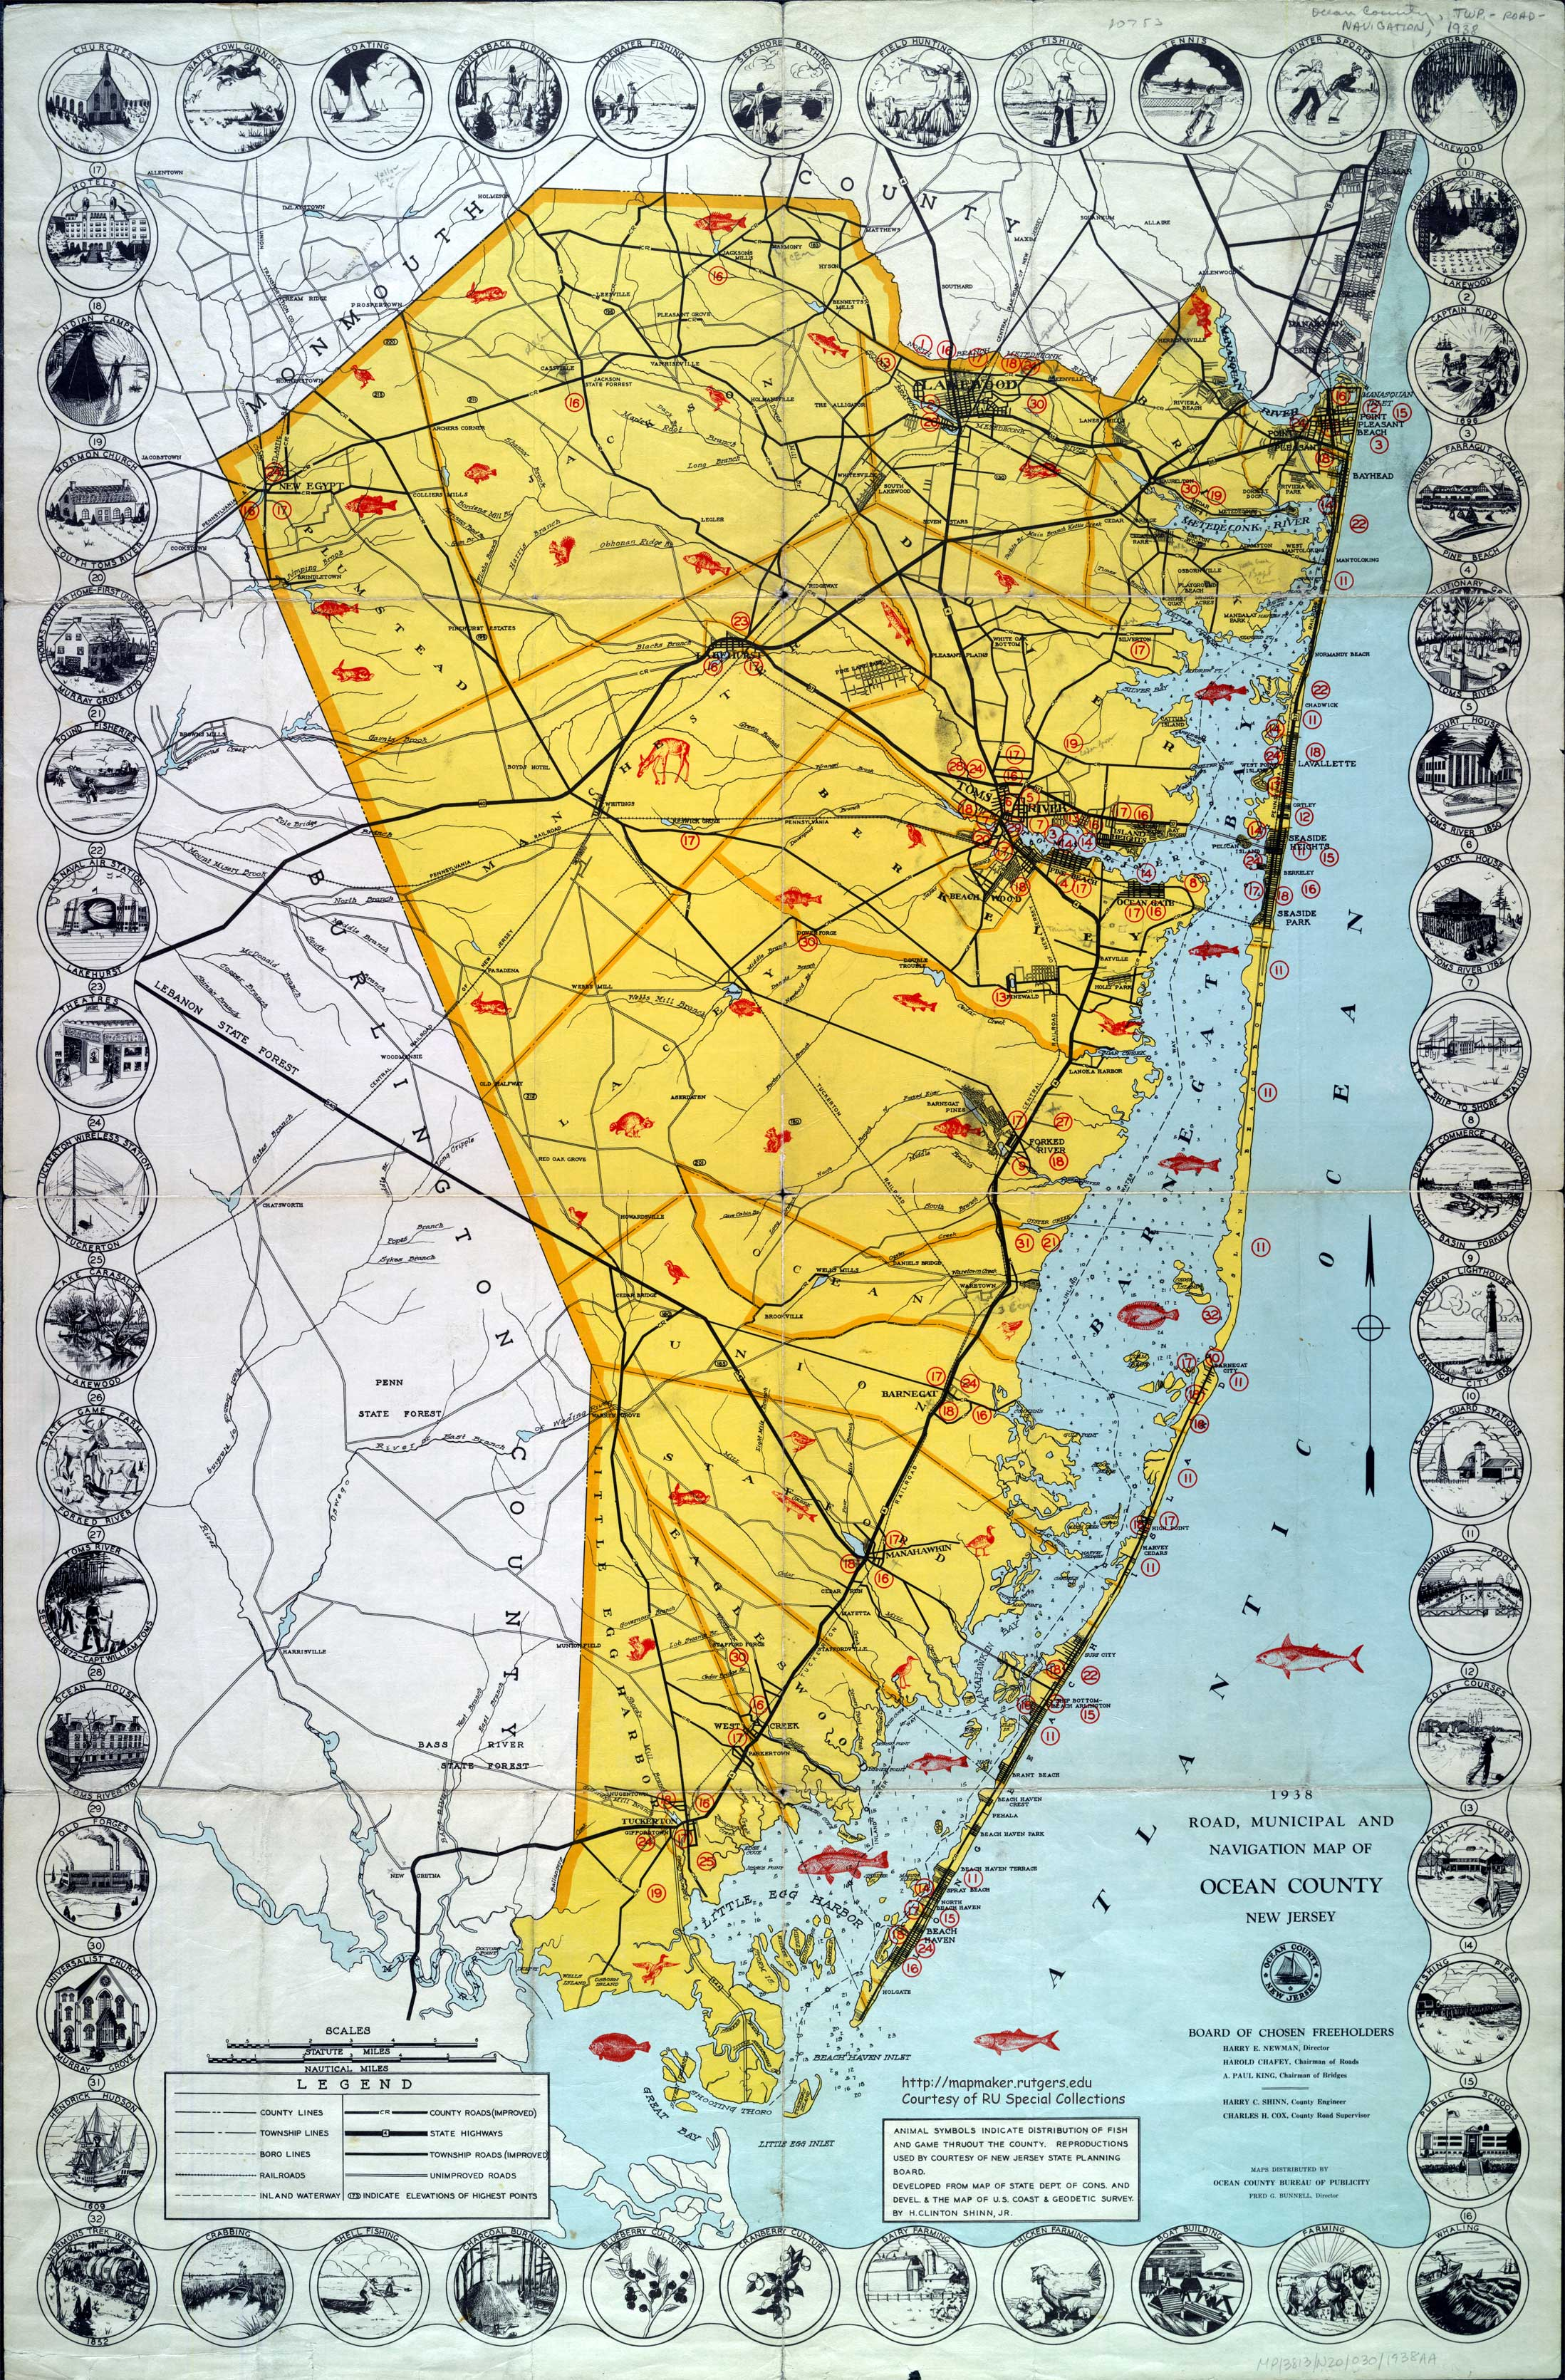 Historical Ocean County New Jersey Maps - Nj road map